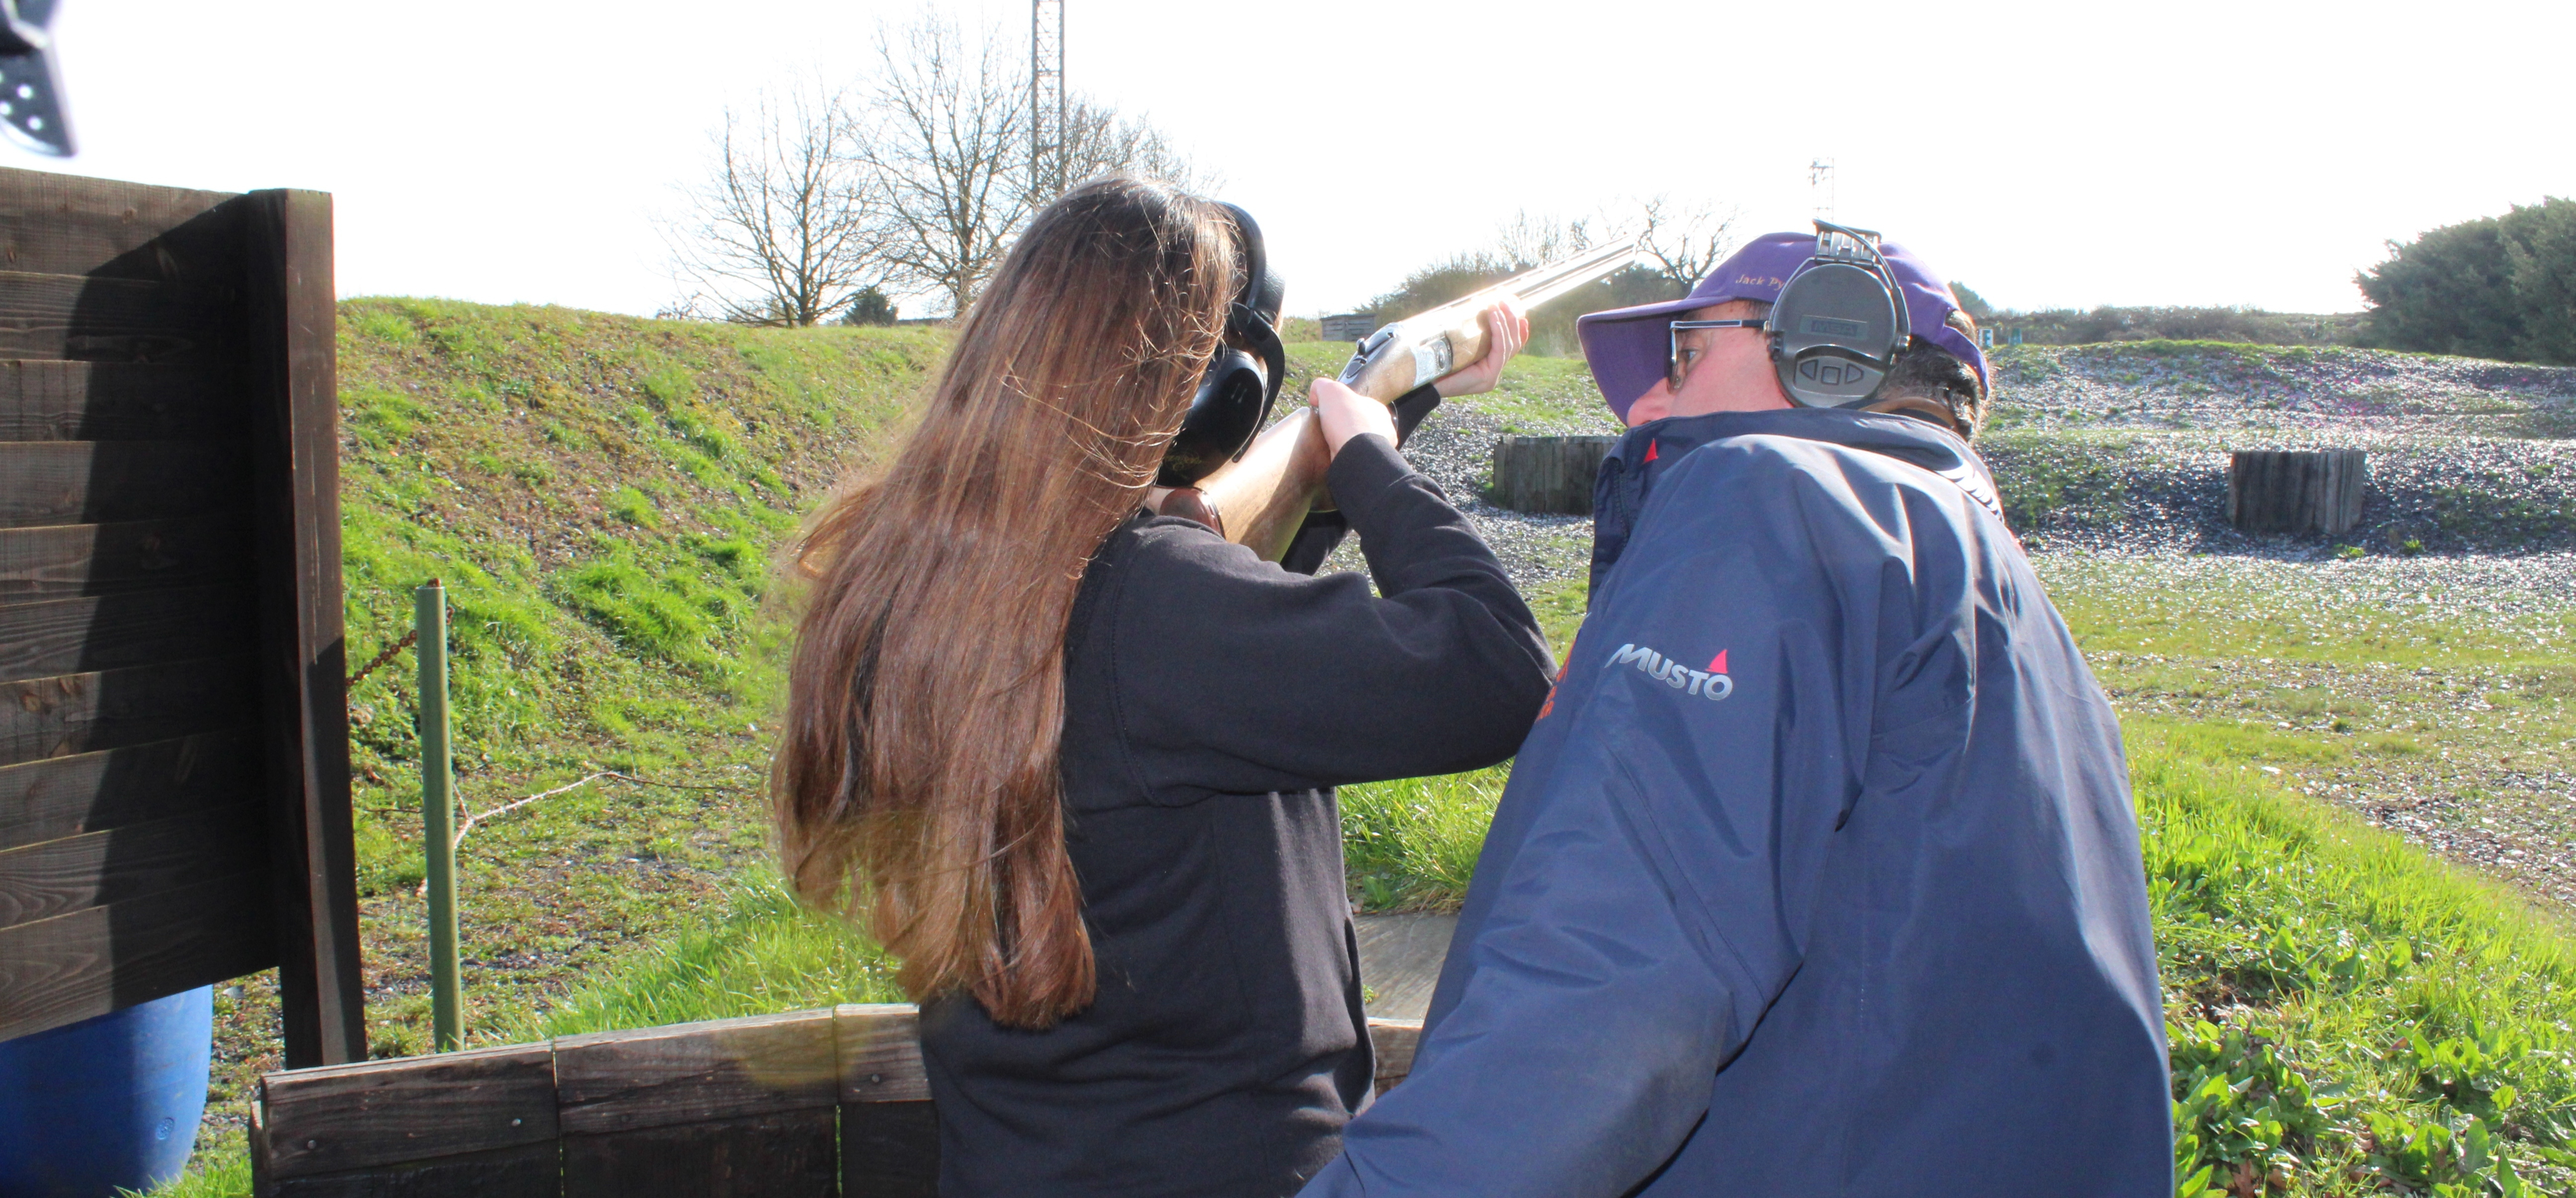 b71815bd Partner Interview with Sporting Targets in Bedfordshire - Experience ...